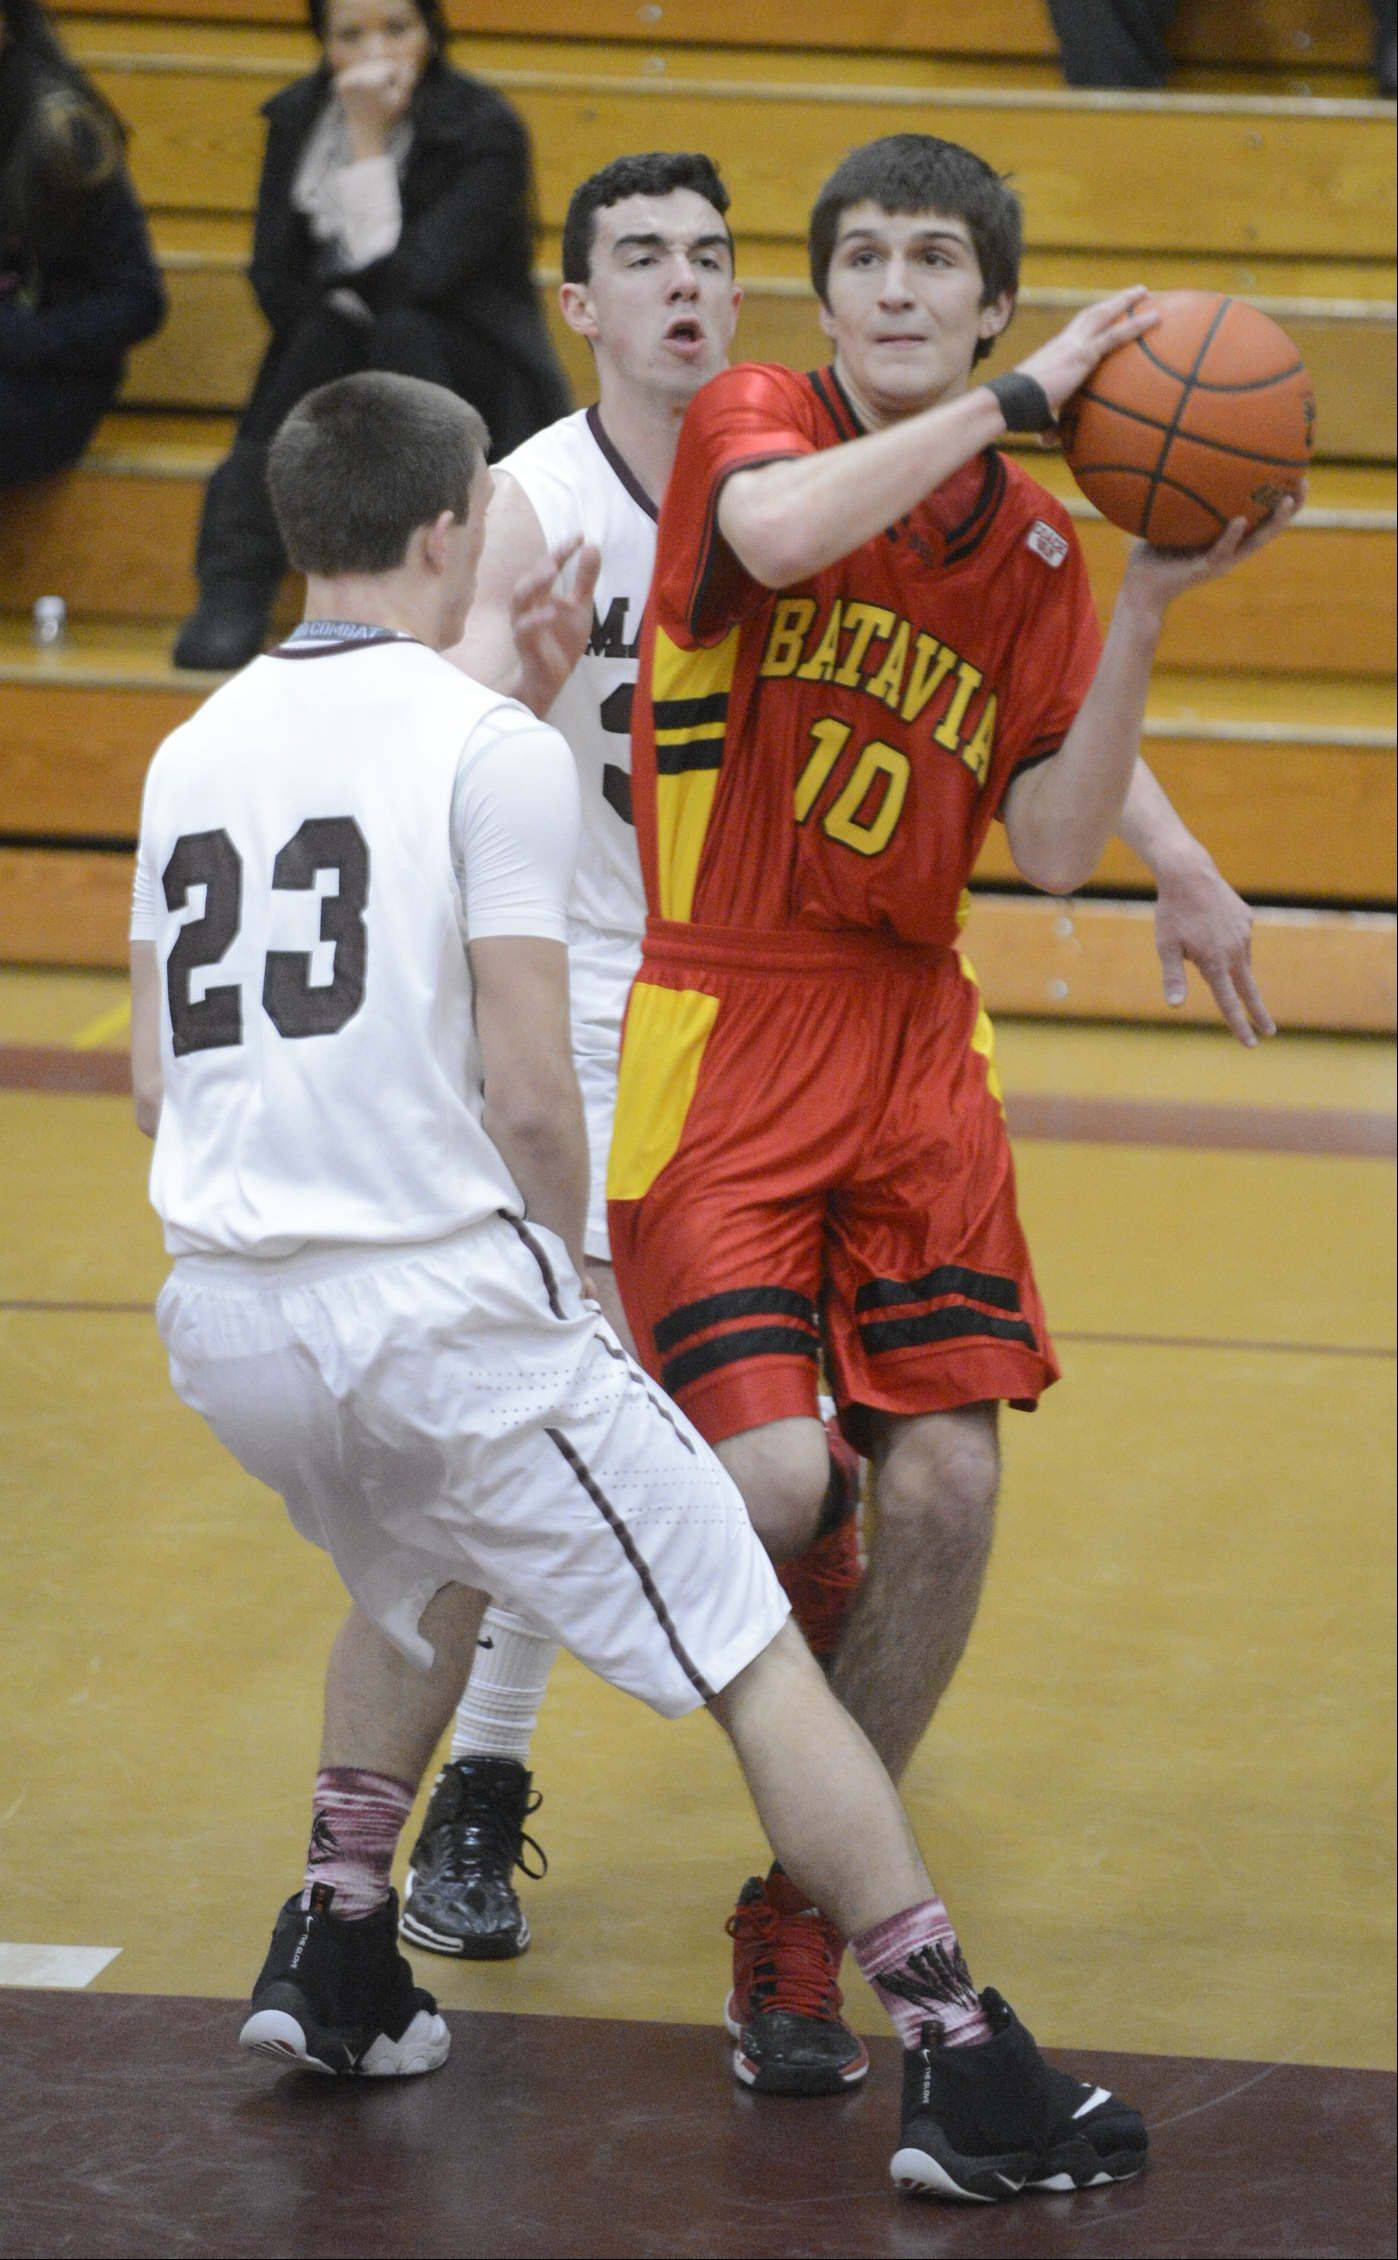 Images from the Elgin vs. Batavia boys basketball game Saturday, January 18, 2014.